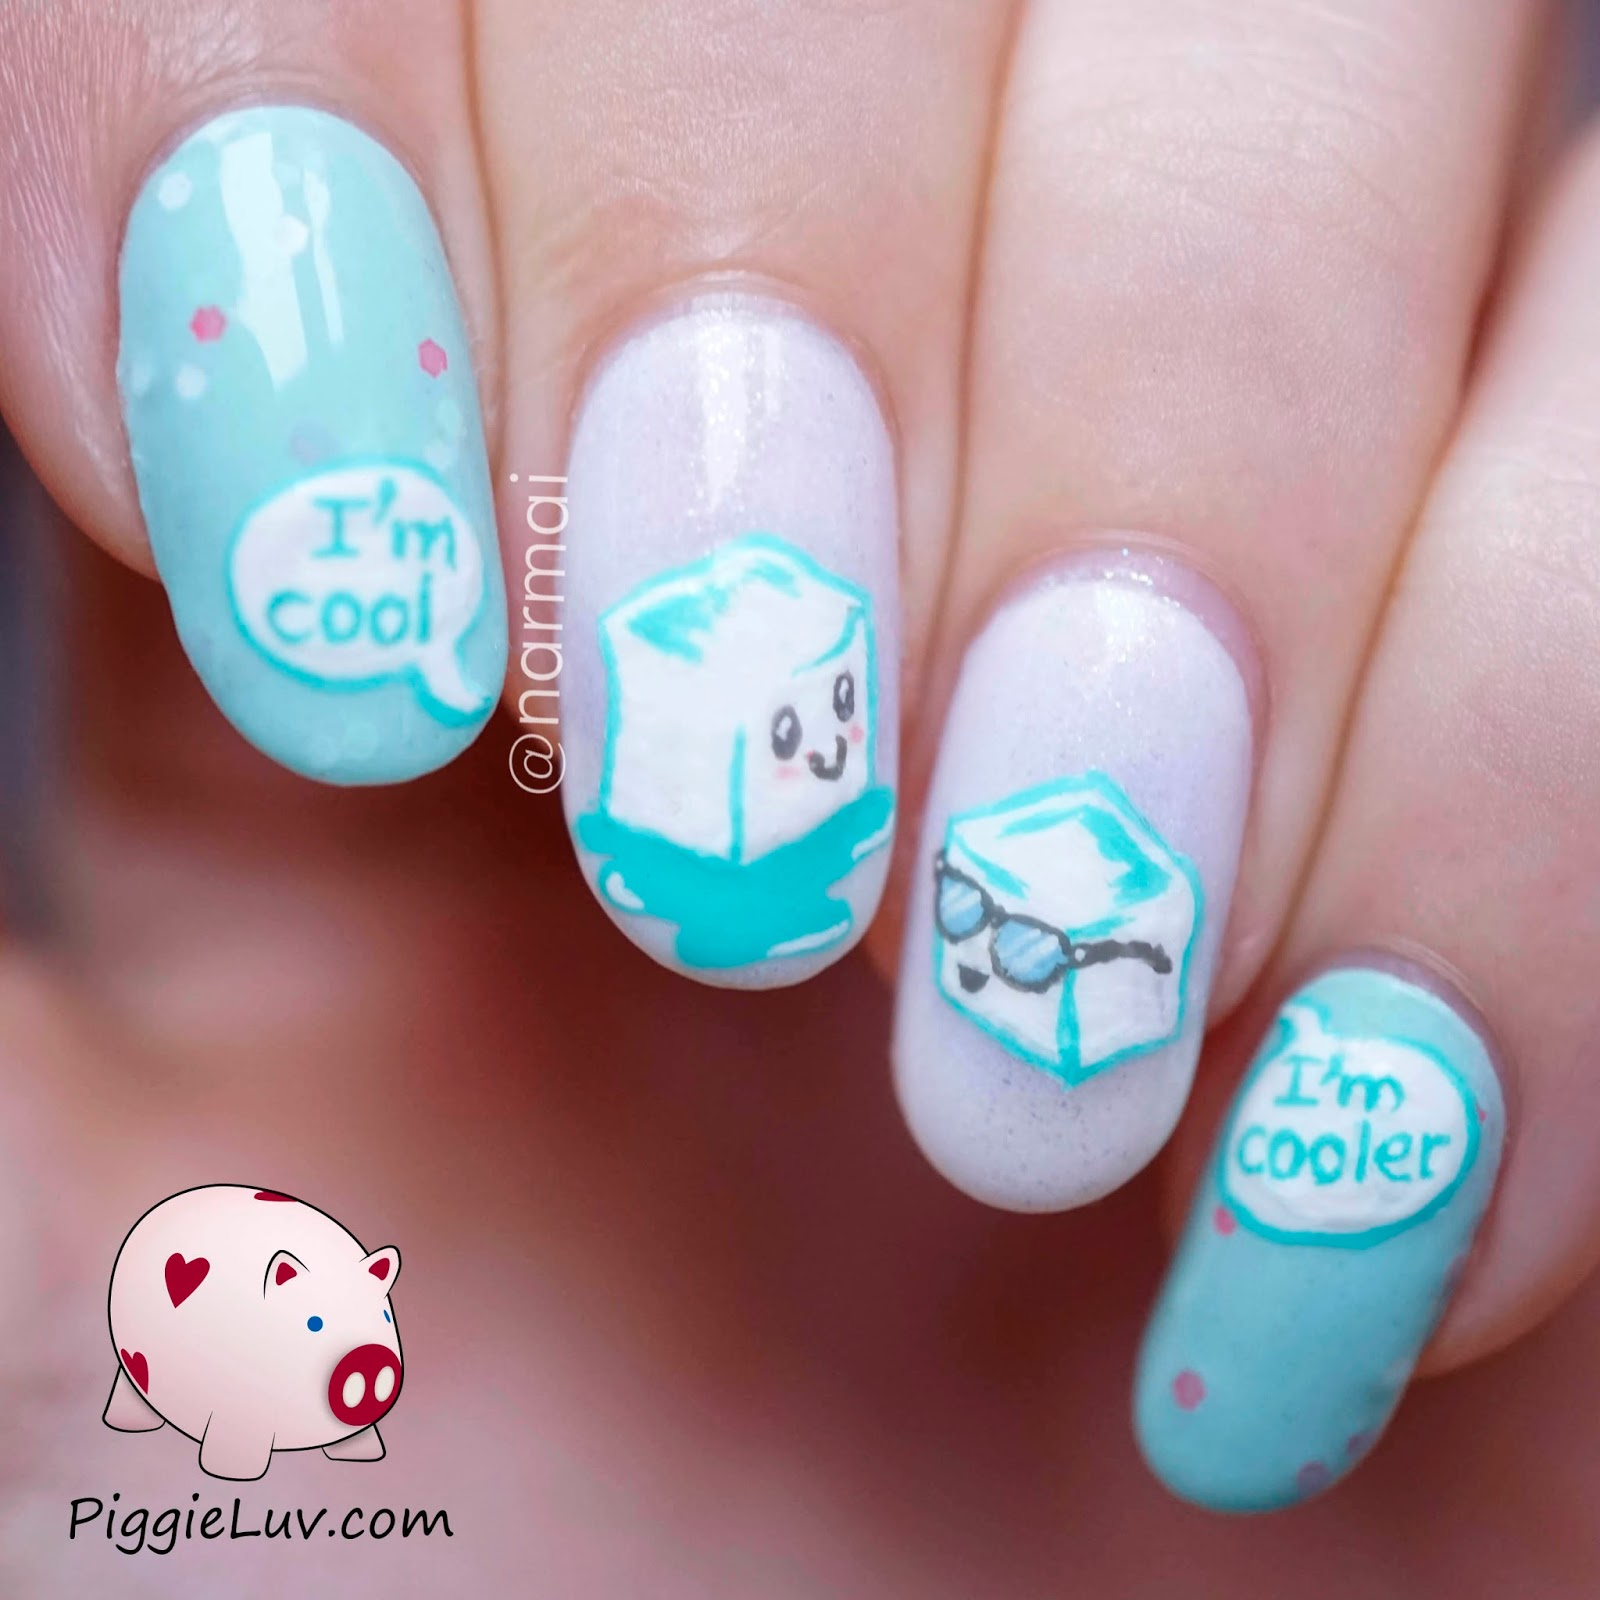 Piggieluv ice ice baby cool ice cubes nail art than being cool ice cold just some ice cubes chilling here the one with the sunglasses has upped the coolness factor see the perfect cute nail art prinsesfo Image collections